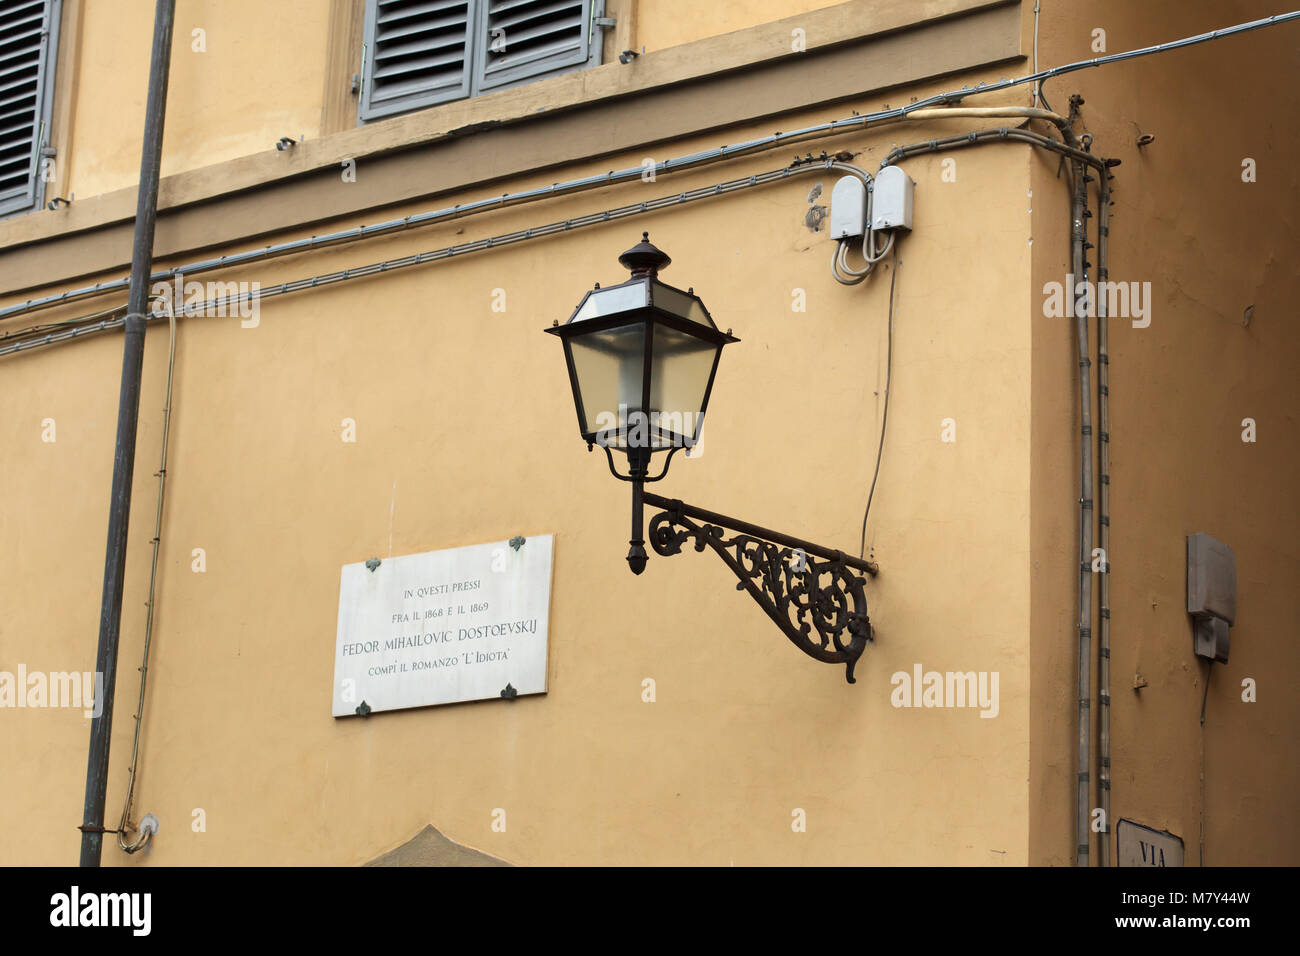 Commemorative plaque on the house where Russian novelist Fyodor Dostoyevsky lived in Piazza Pitti in Florence, Tuscany, - Stock Image